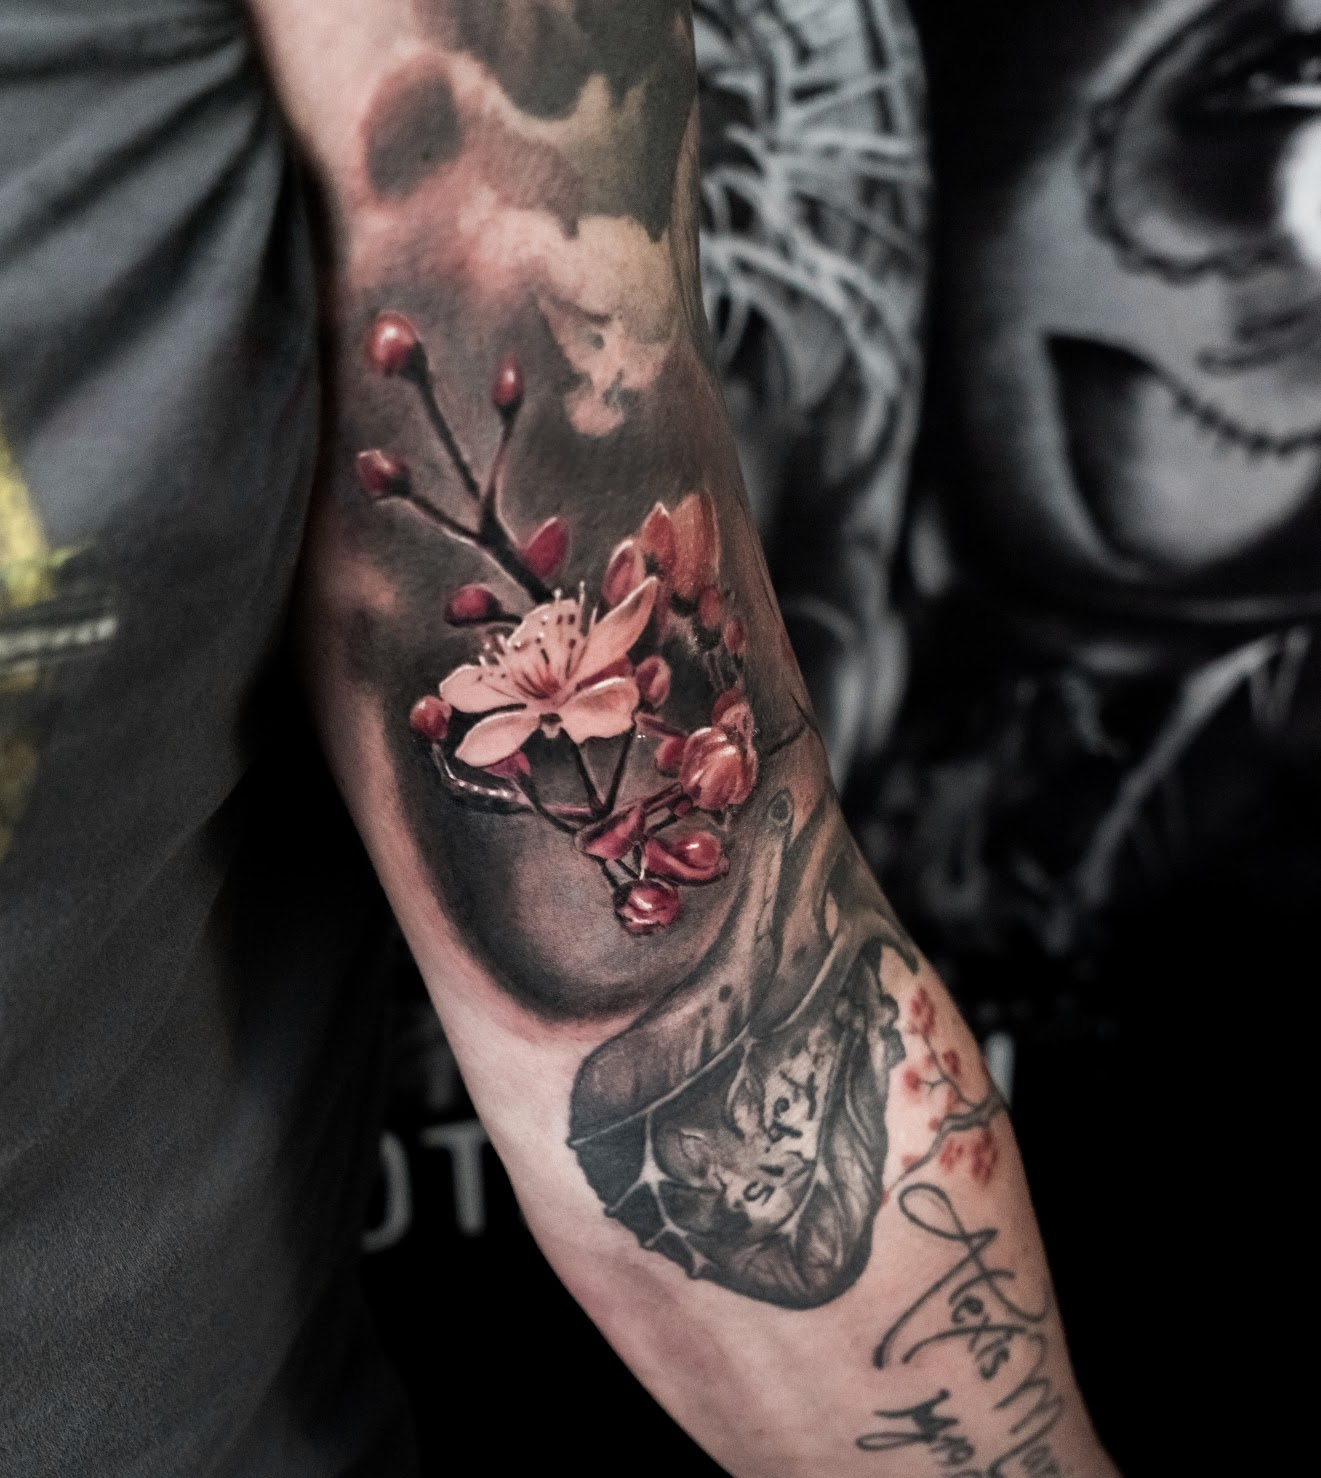 Photorealistic flower tattoo by Scoot Ink